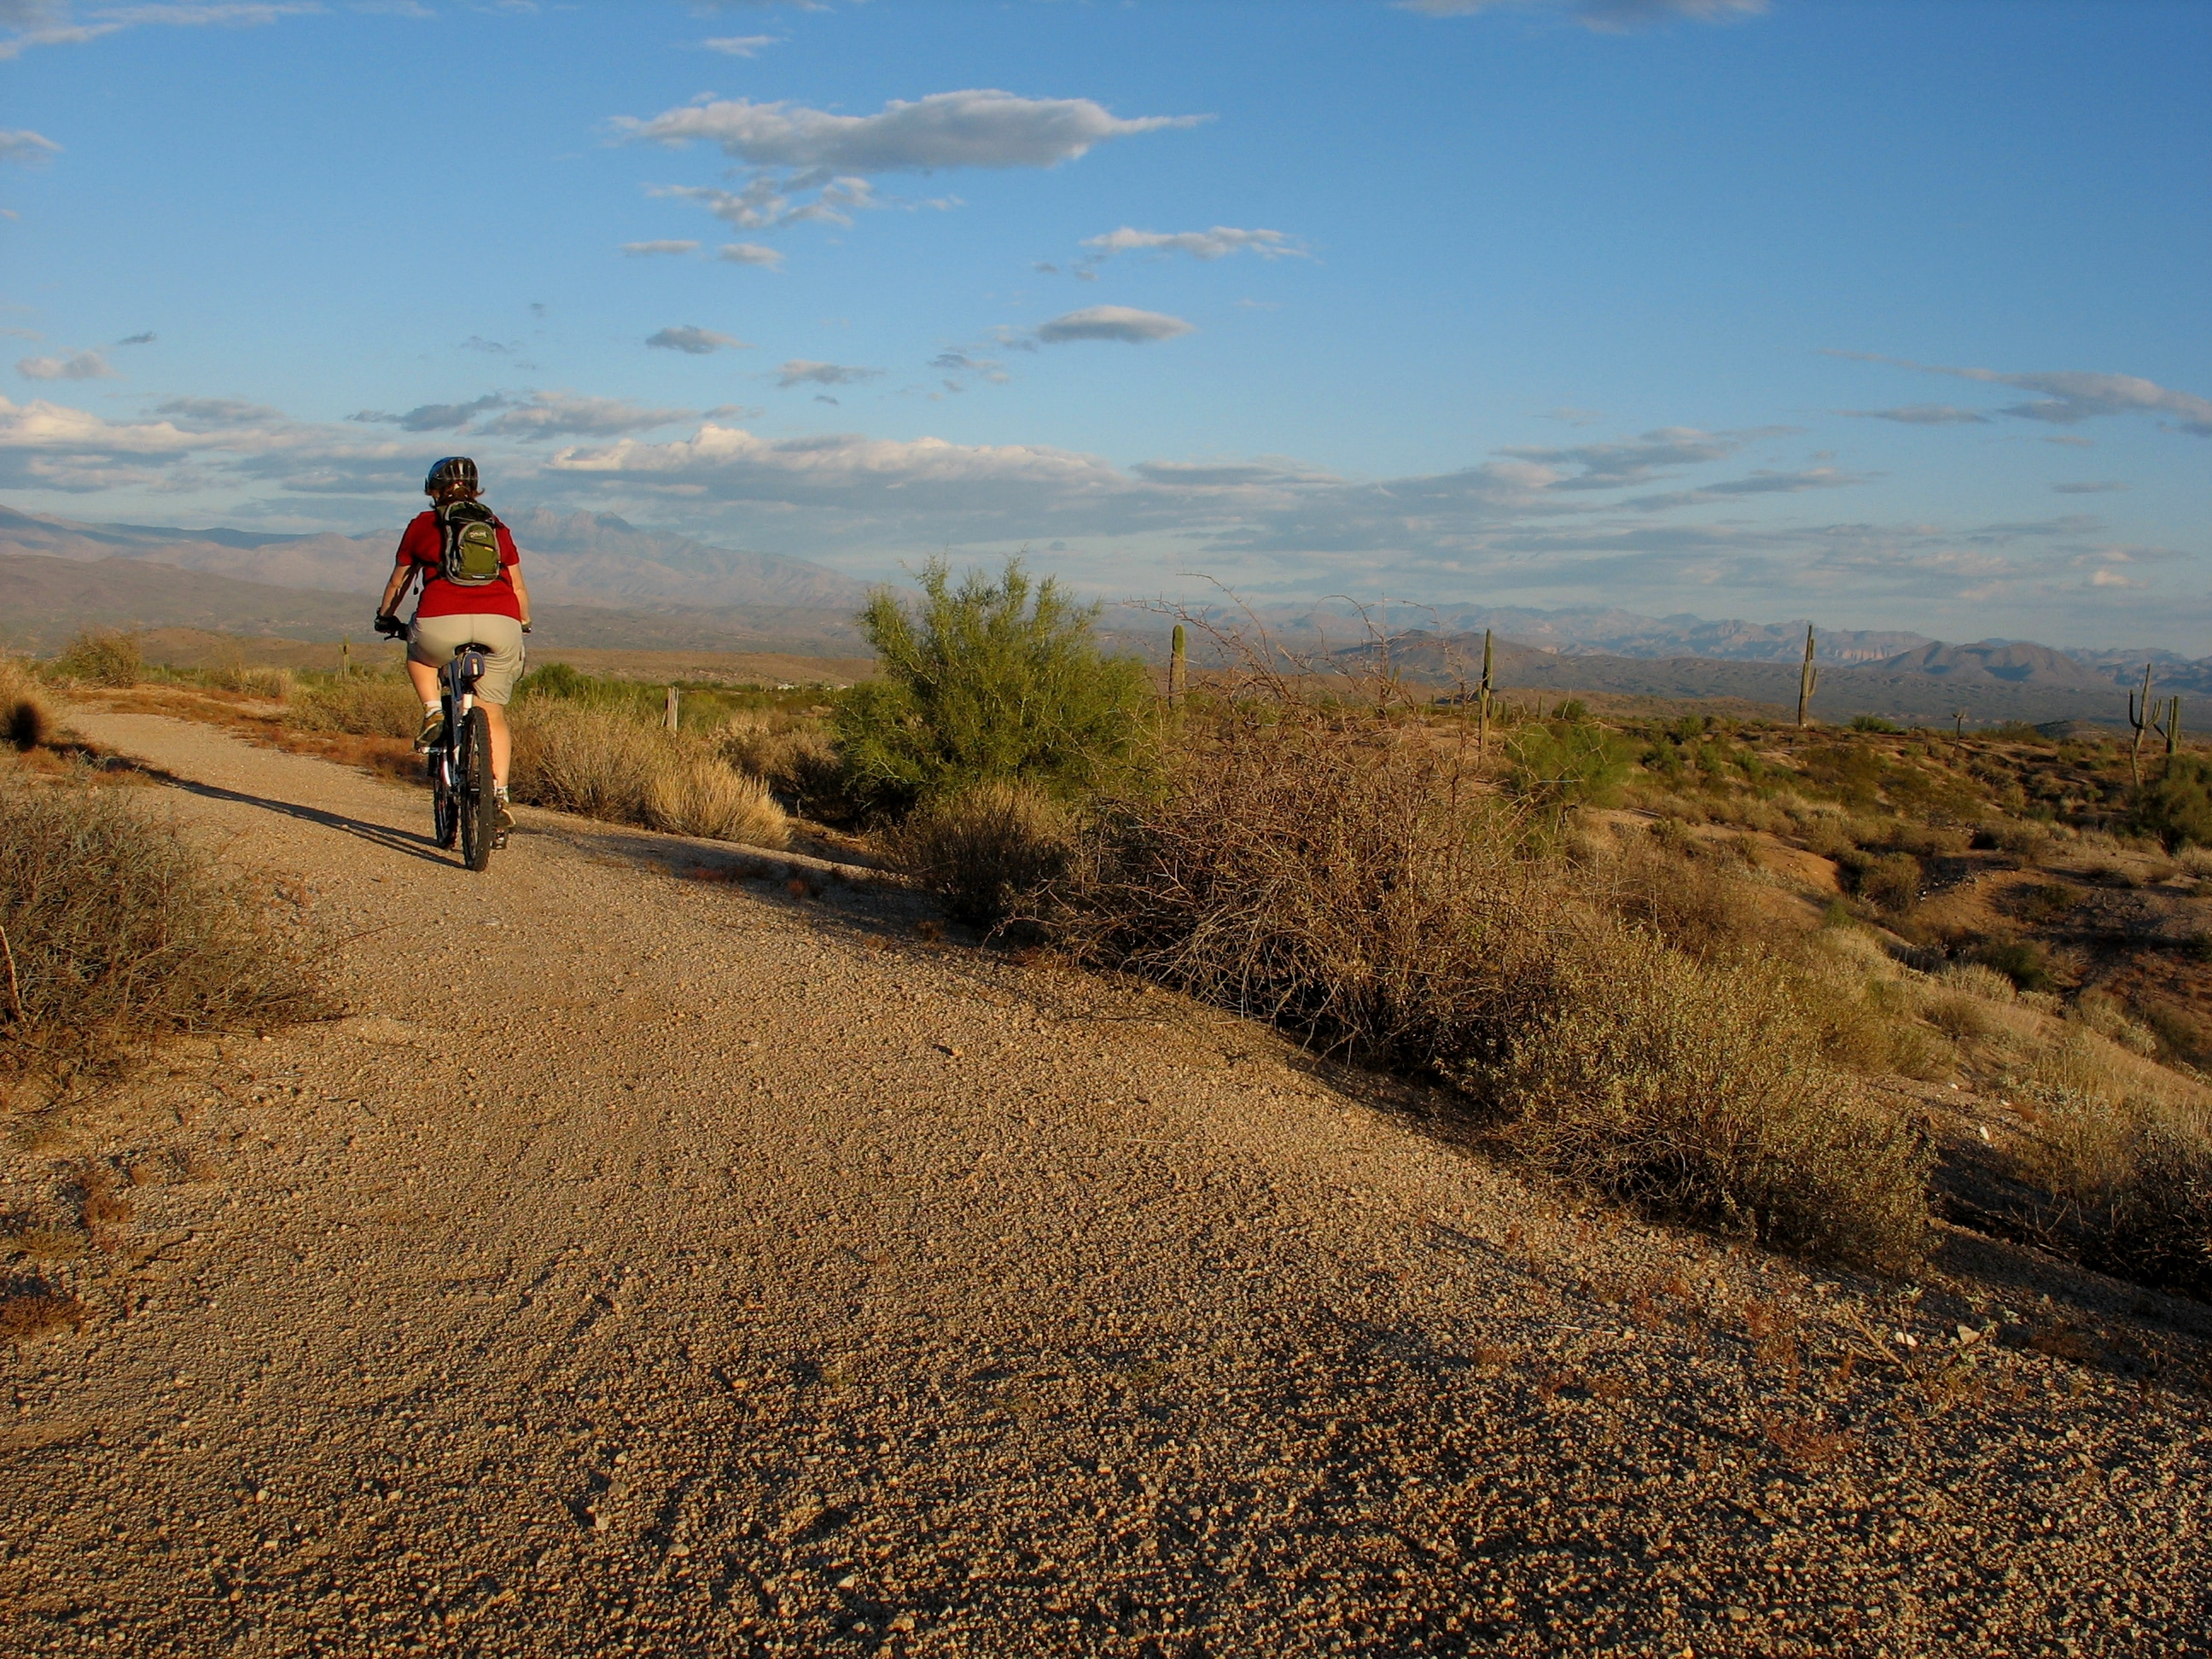 A man riding a bike in the American desert on an easy trail.